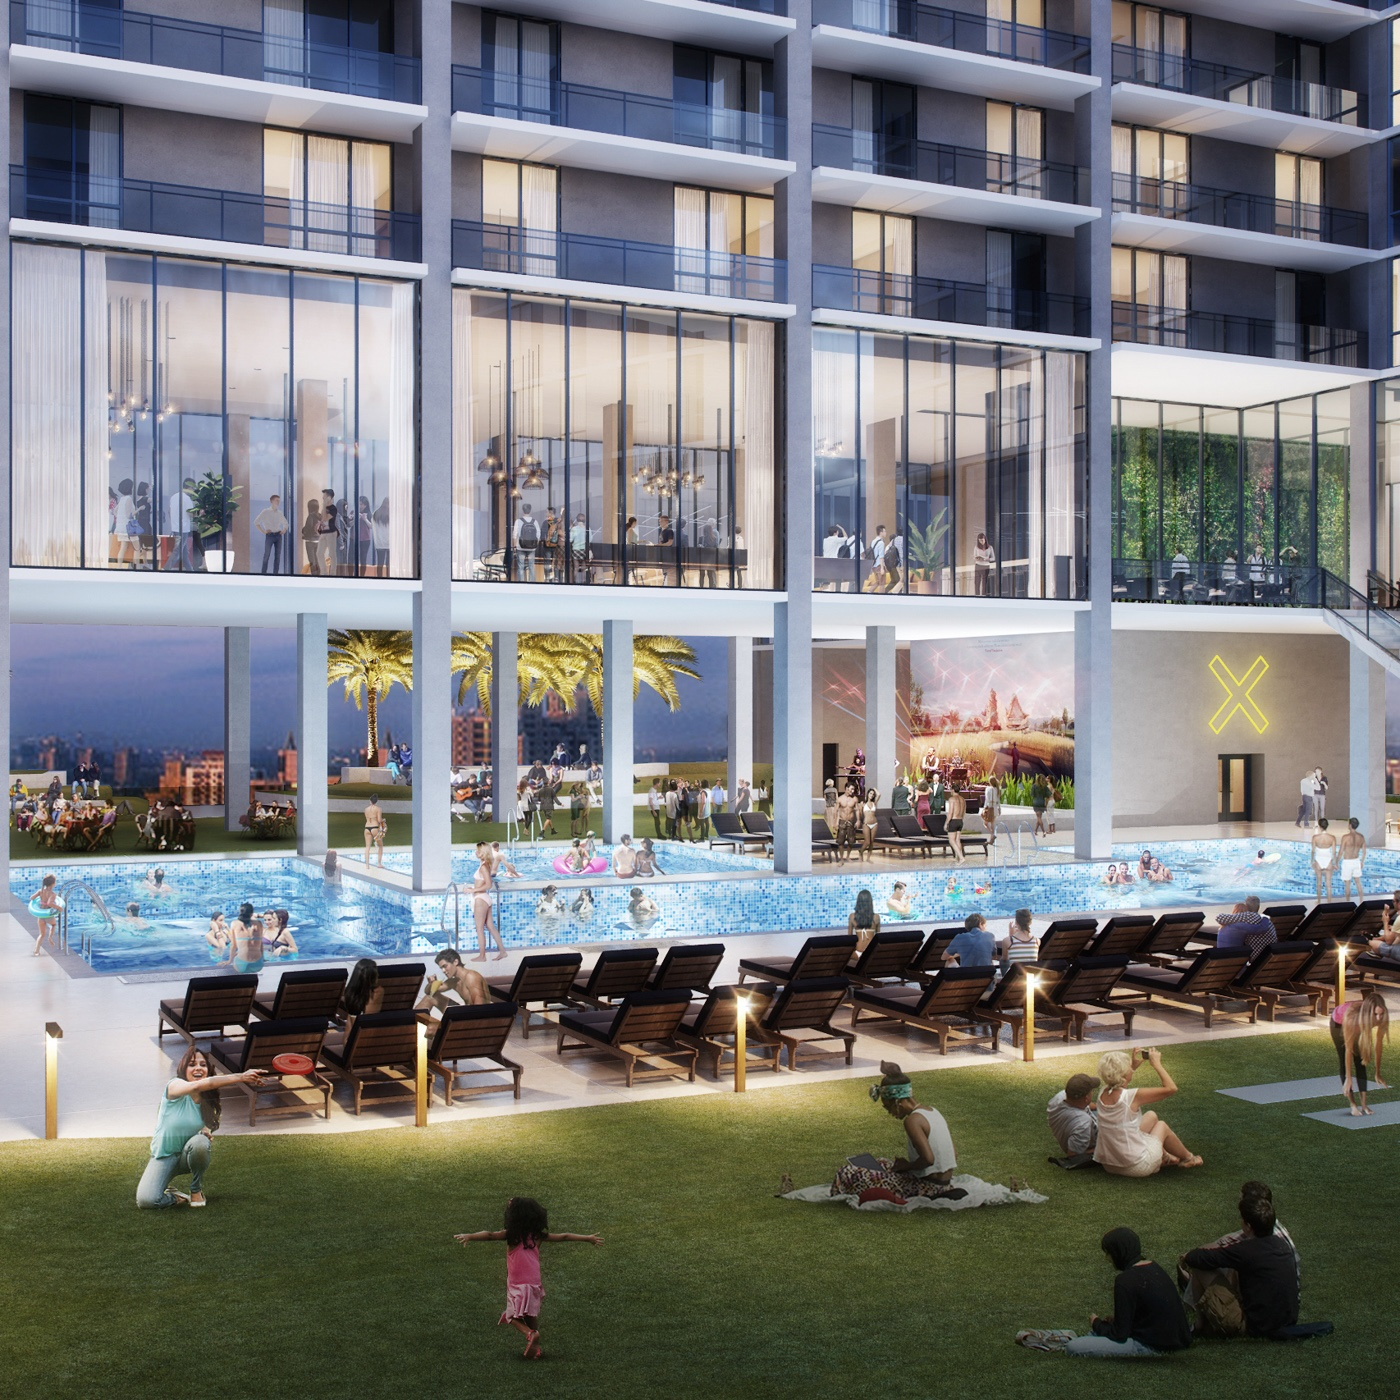 X Phoenix amenity deck with residents lounging poolside.